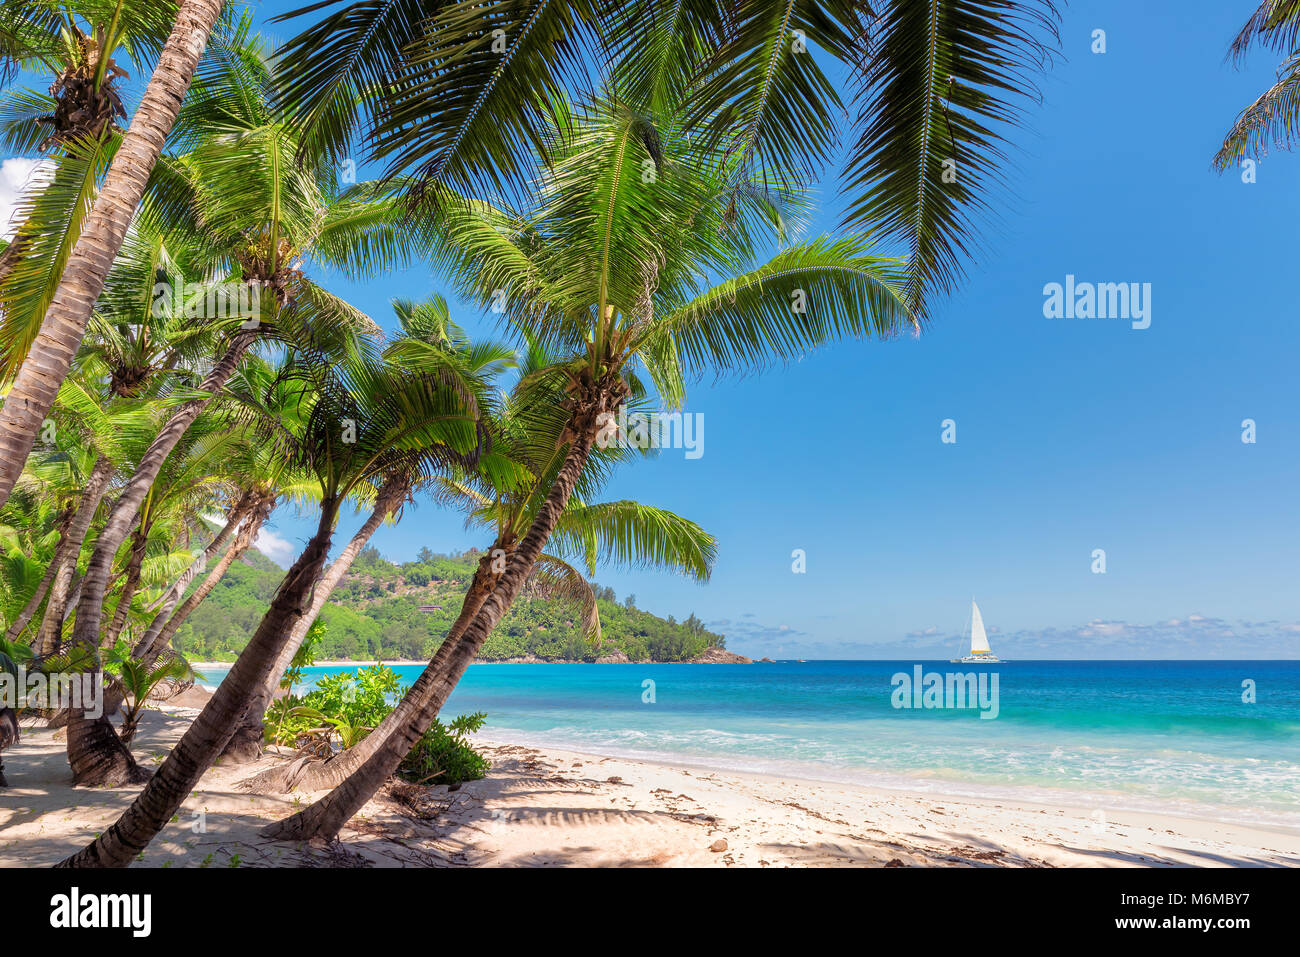 Sandy beach with palm trees and a sailing boat in the turquoise sea on Paradise island - Stock Image